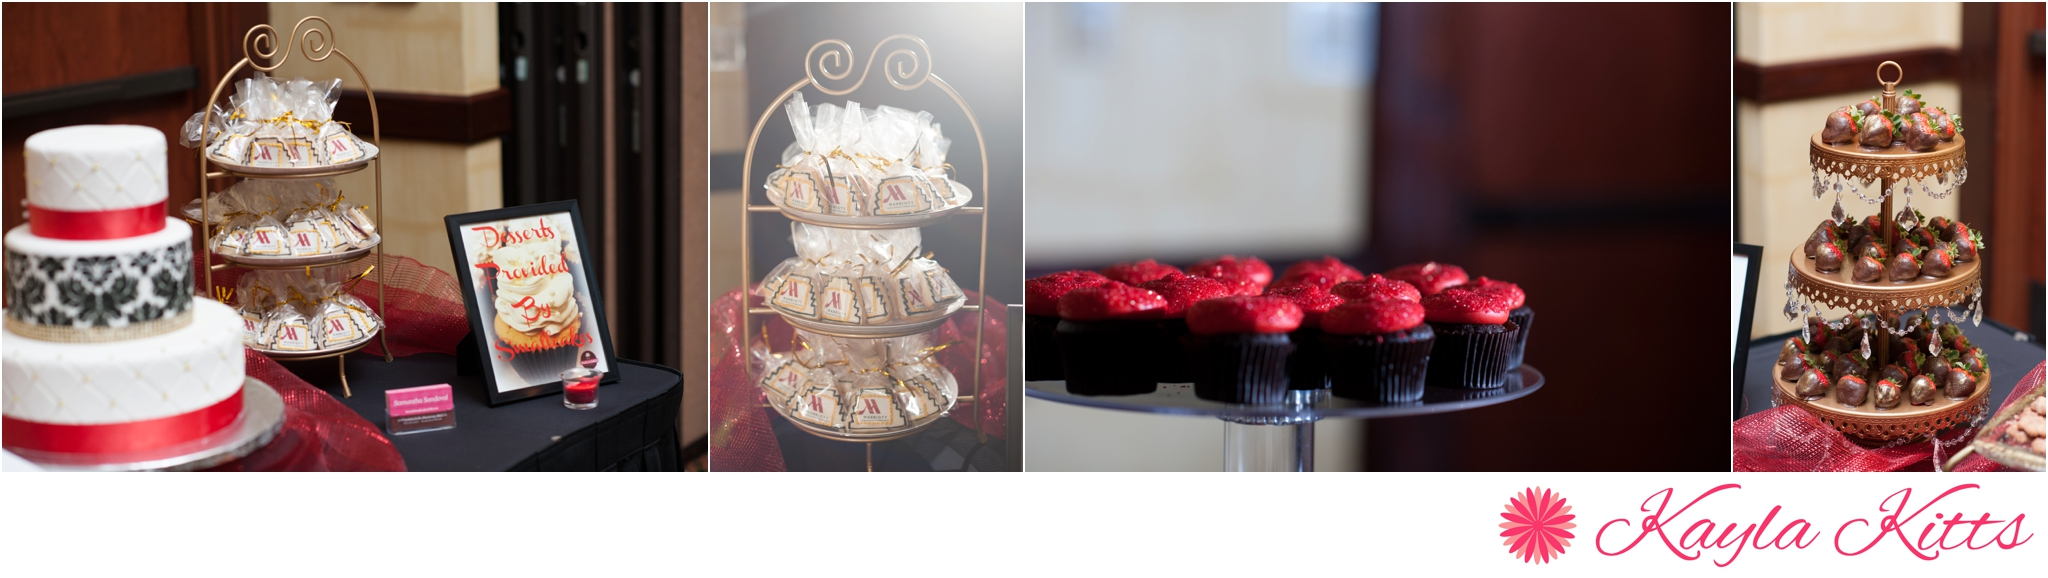 kayla kitts photography - perfect wedding guide - client appreciation party - albuqueruqe marriott_0004.jpg